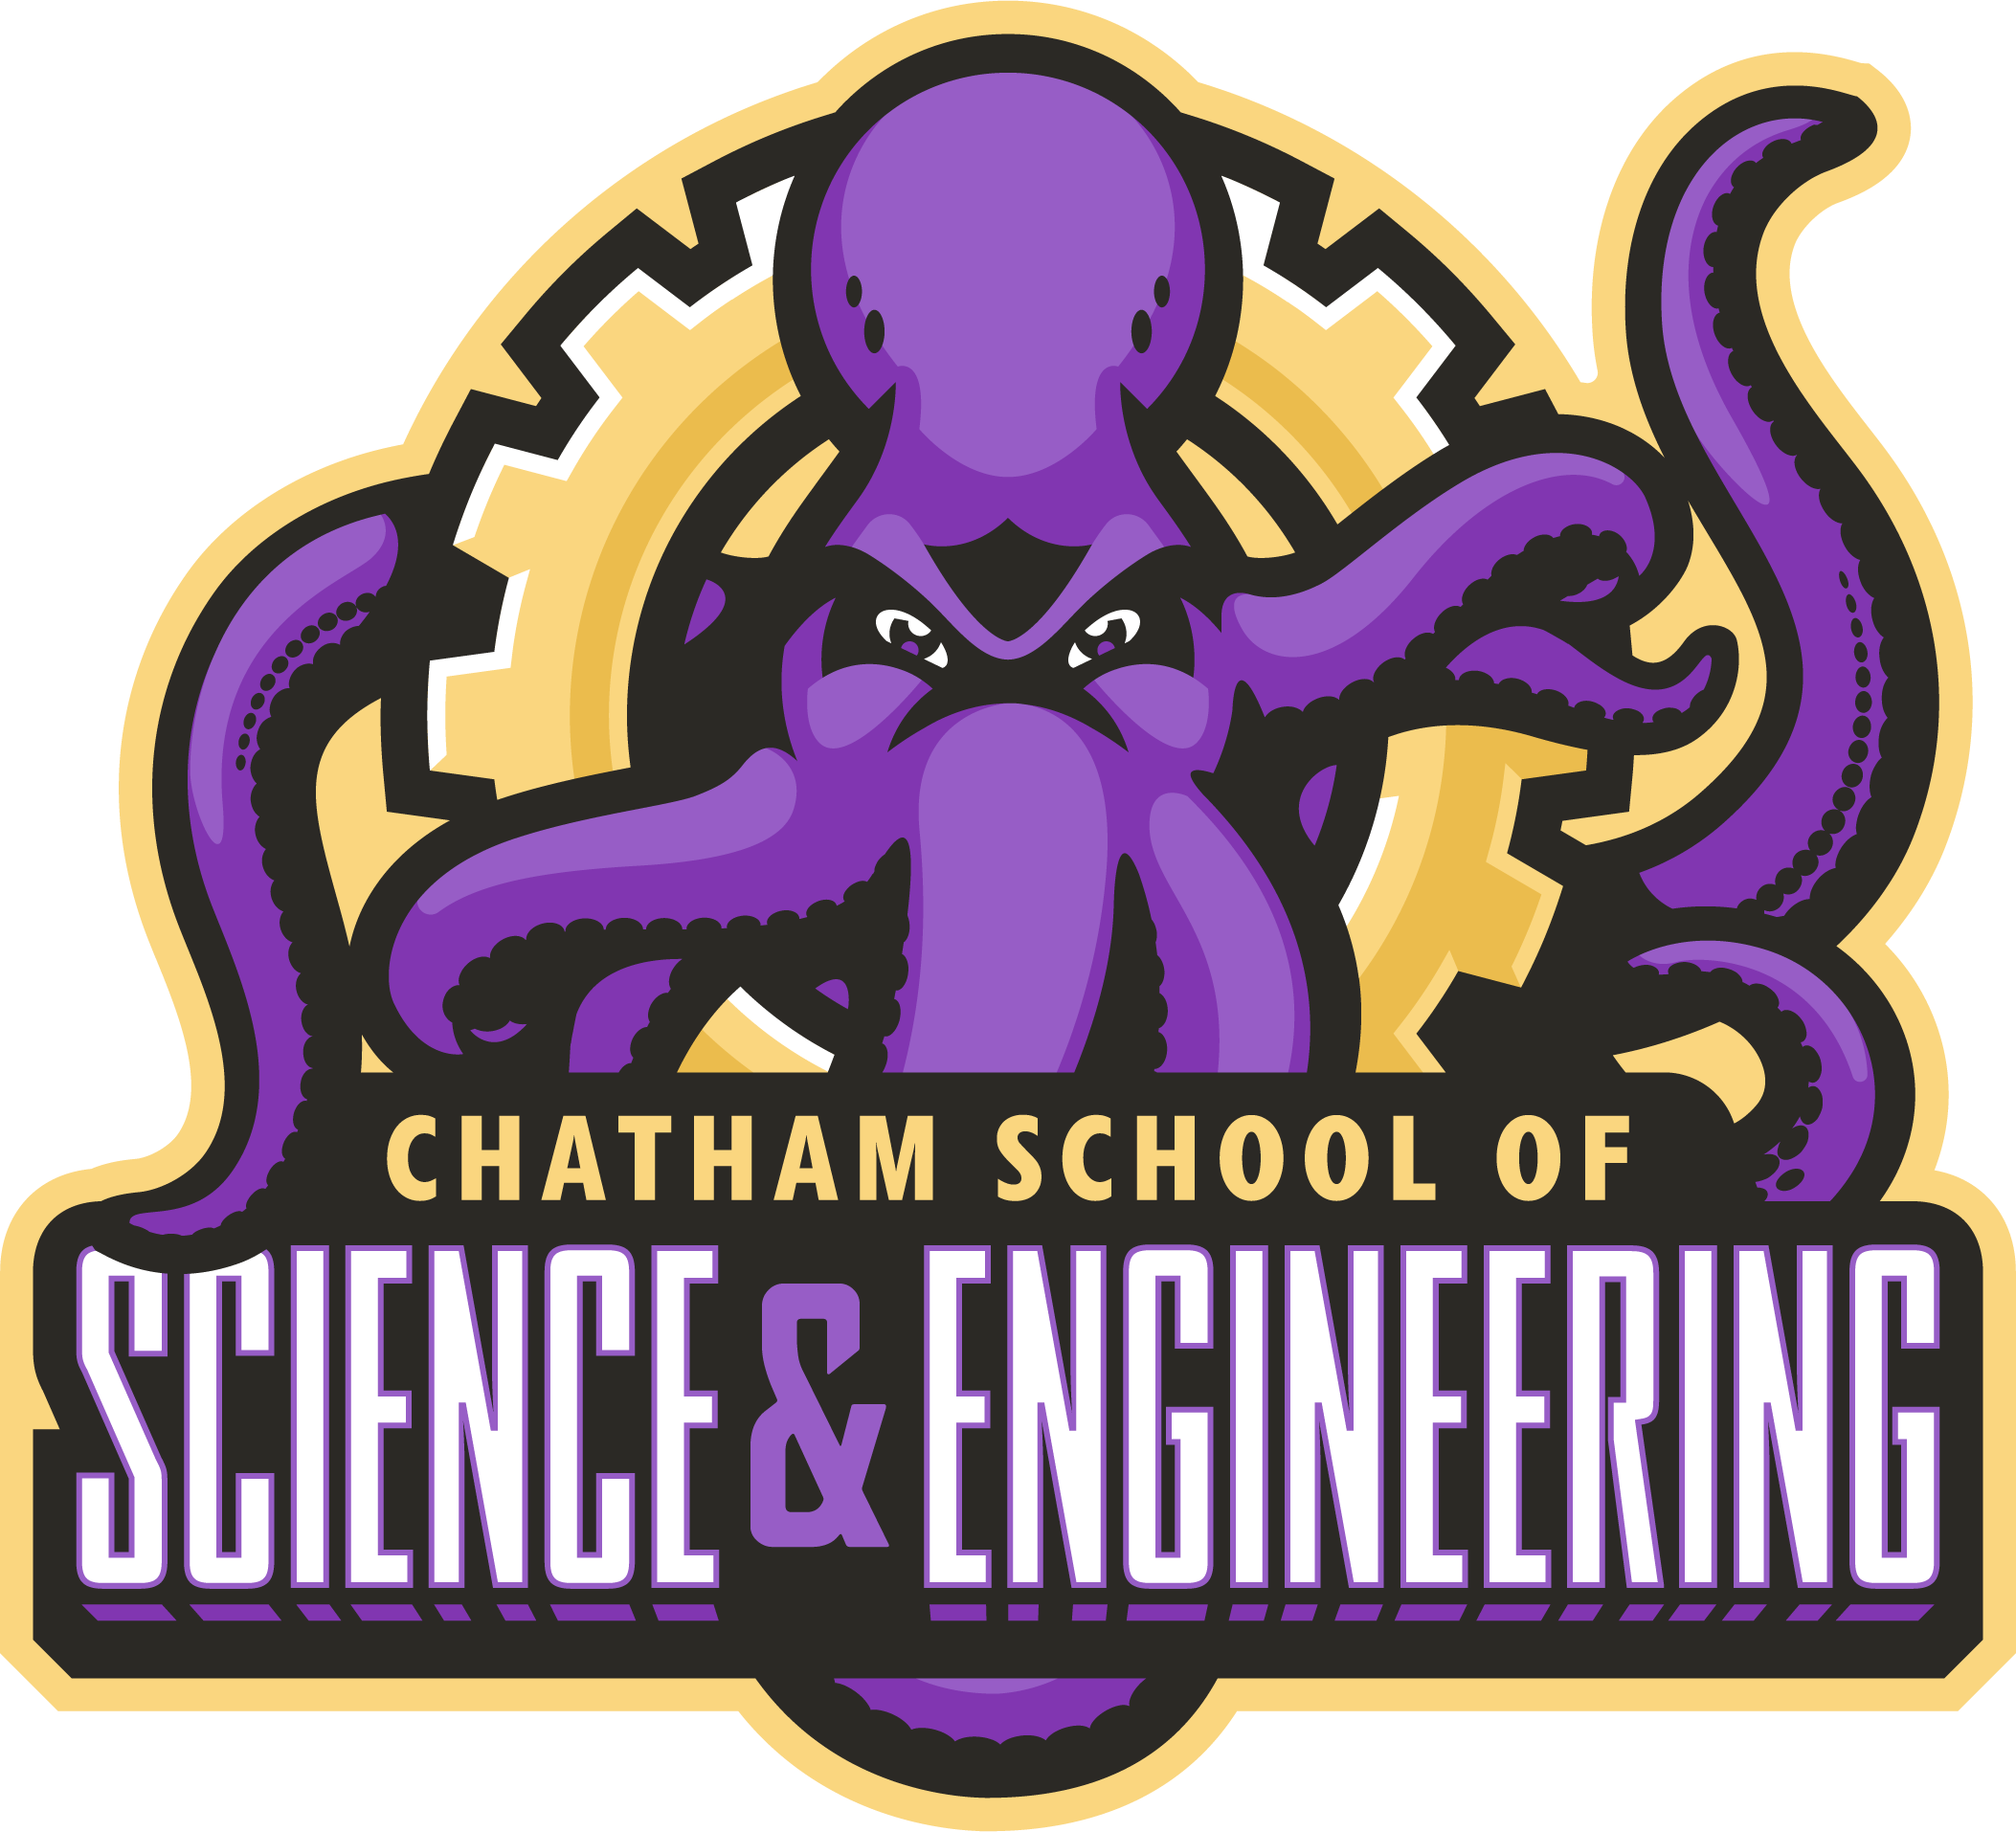 Chatham School of Science & Engineering logo